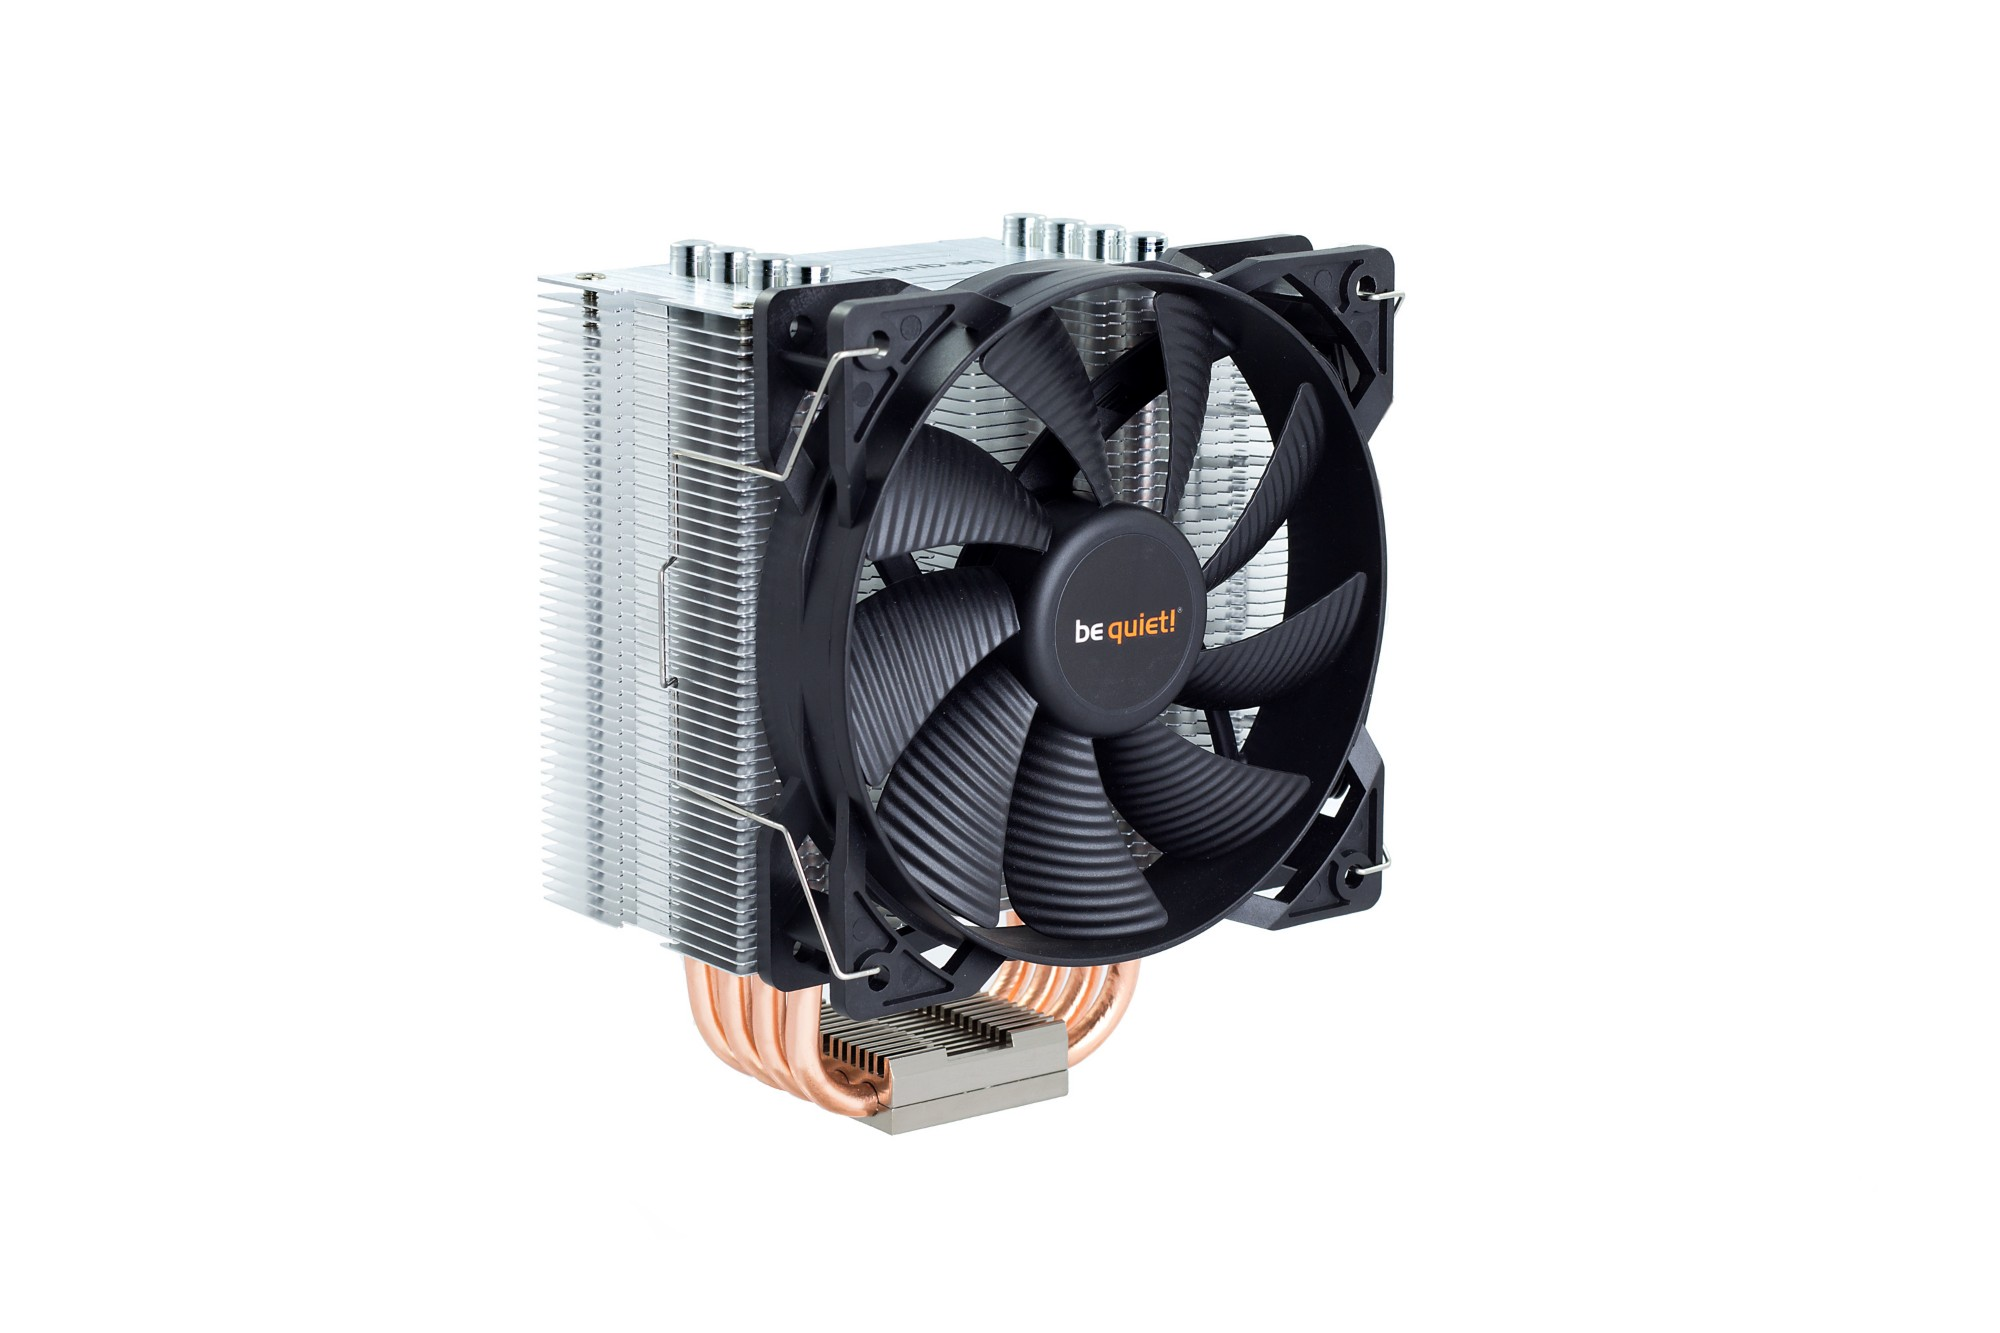 BE QUIET! PURE ROCK, 150 W TDP, 120 MM